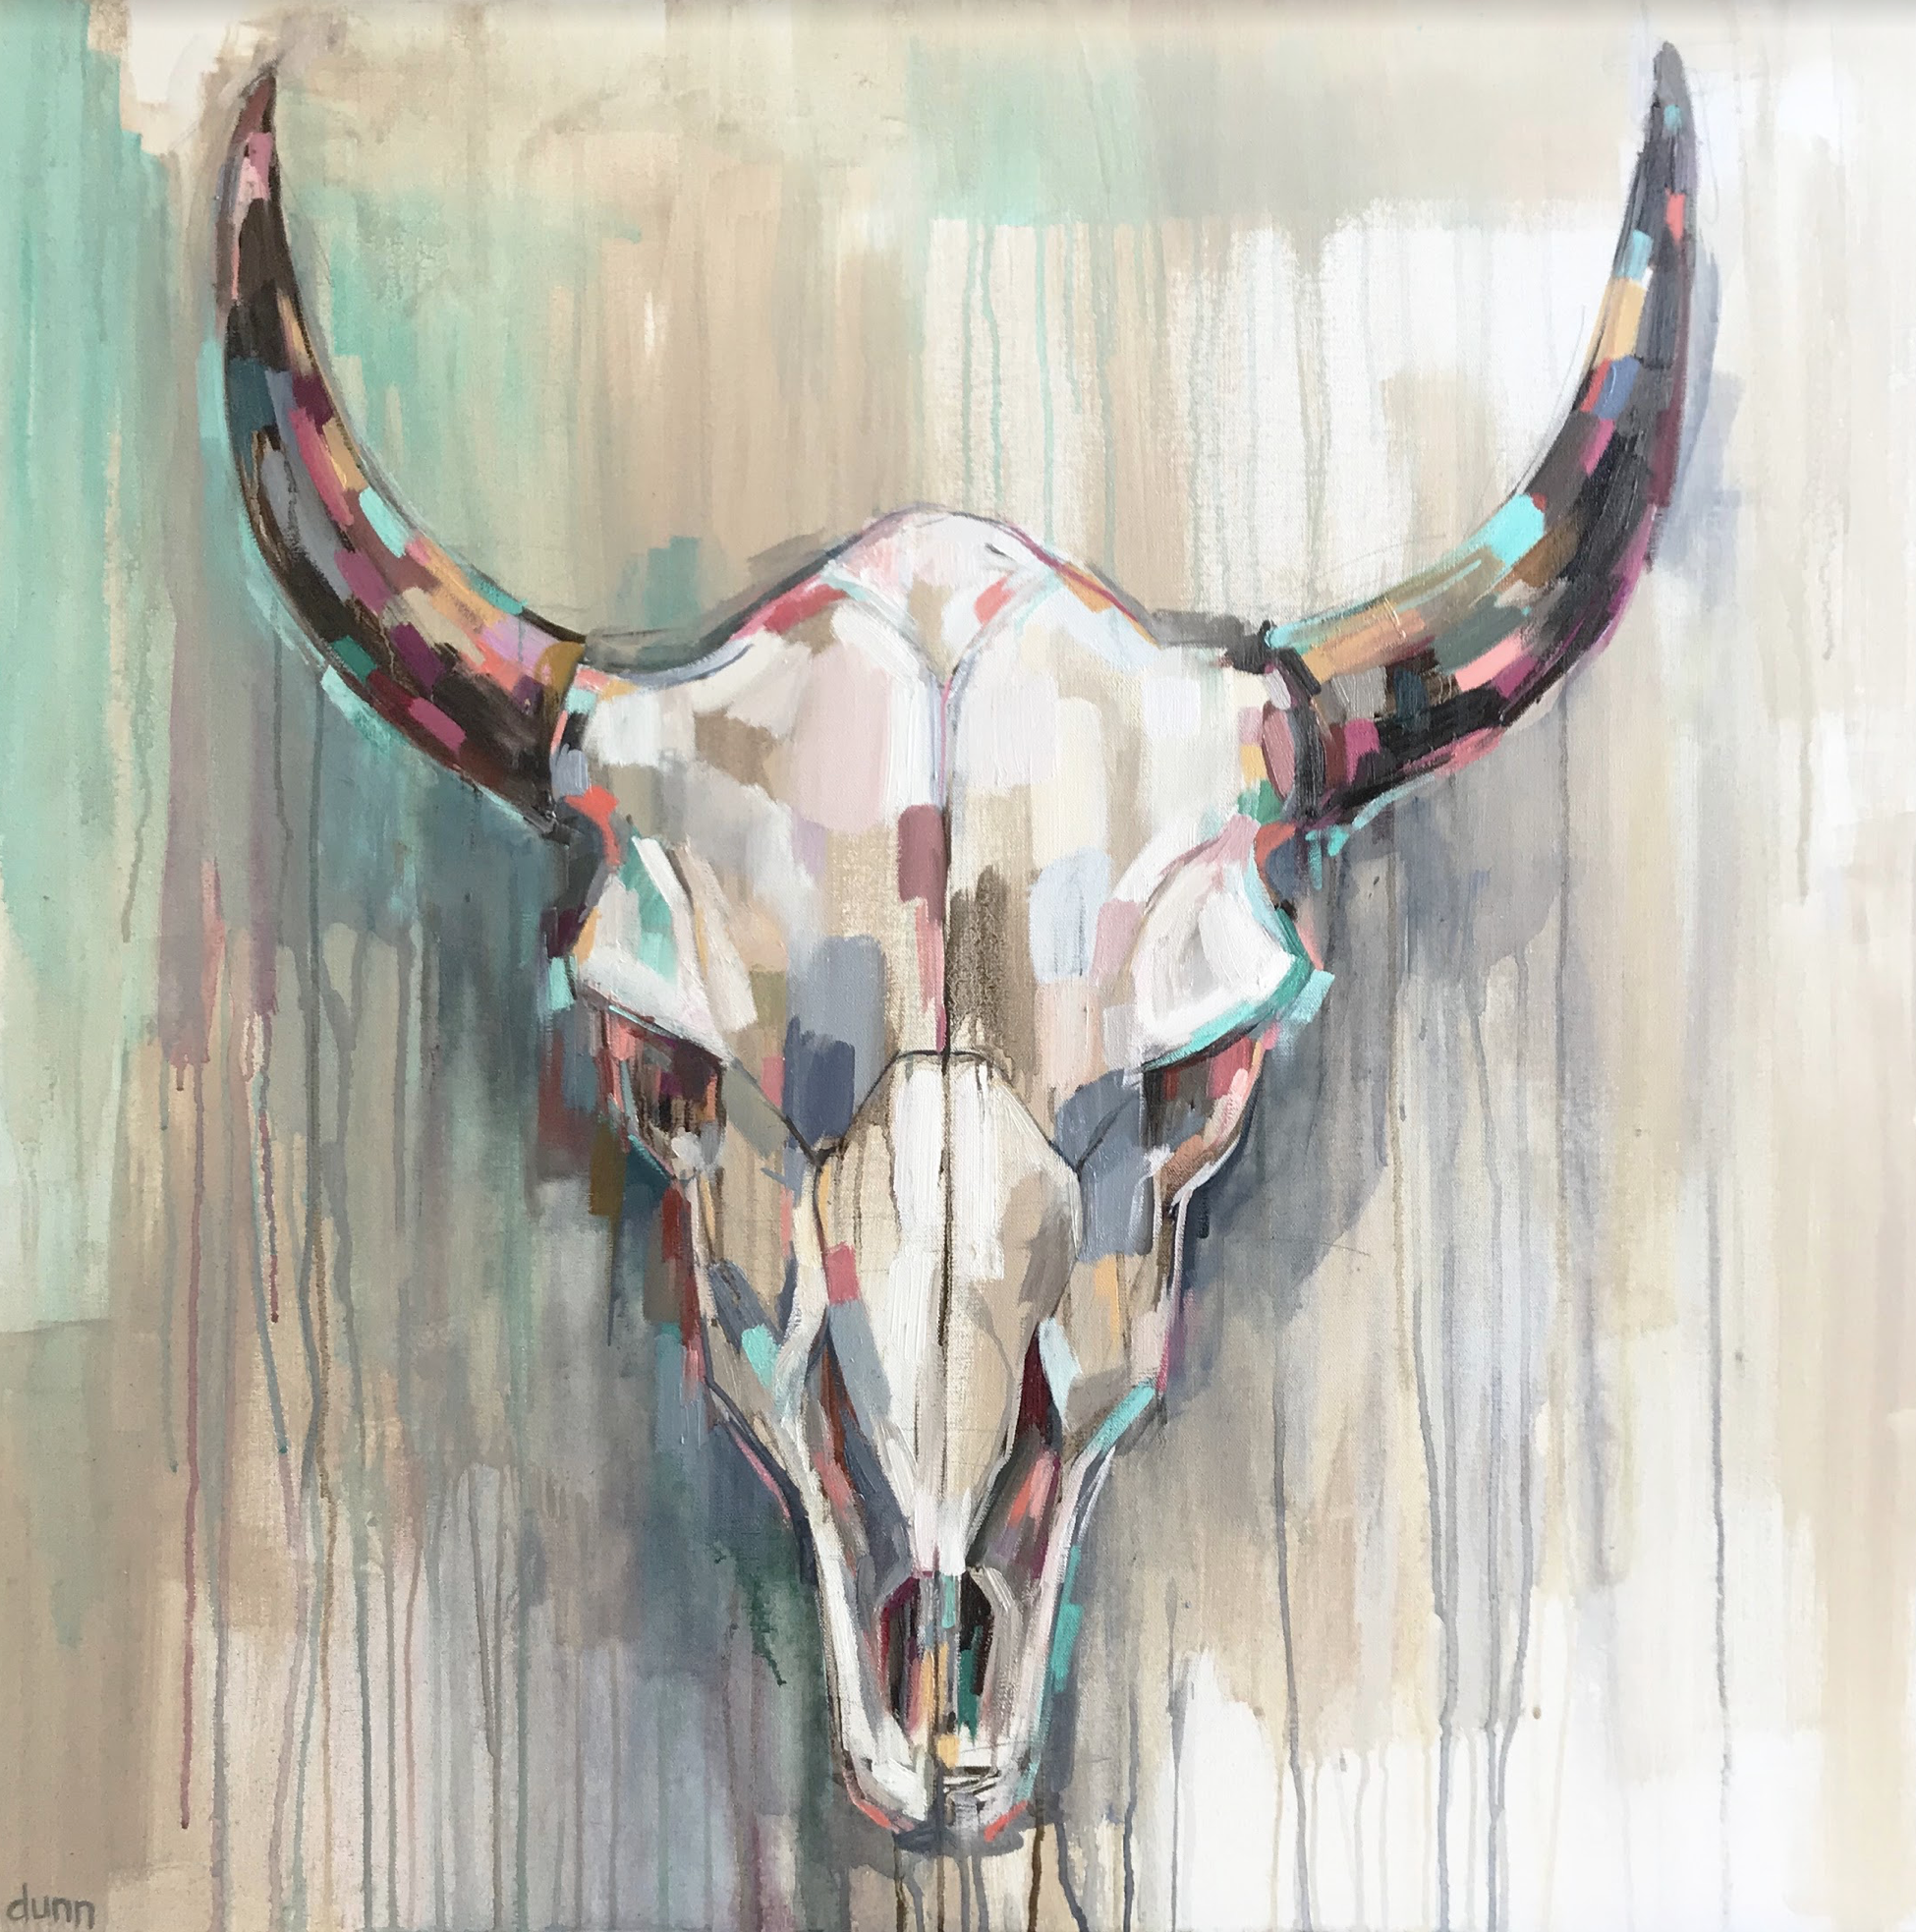 BISON SKULL, oil on canvas, 36 x 36 inches -prints available below